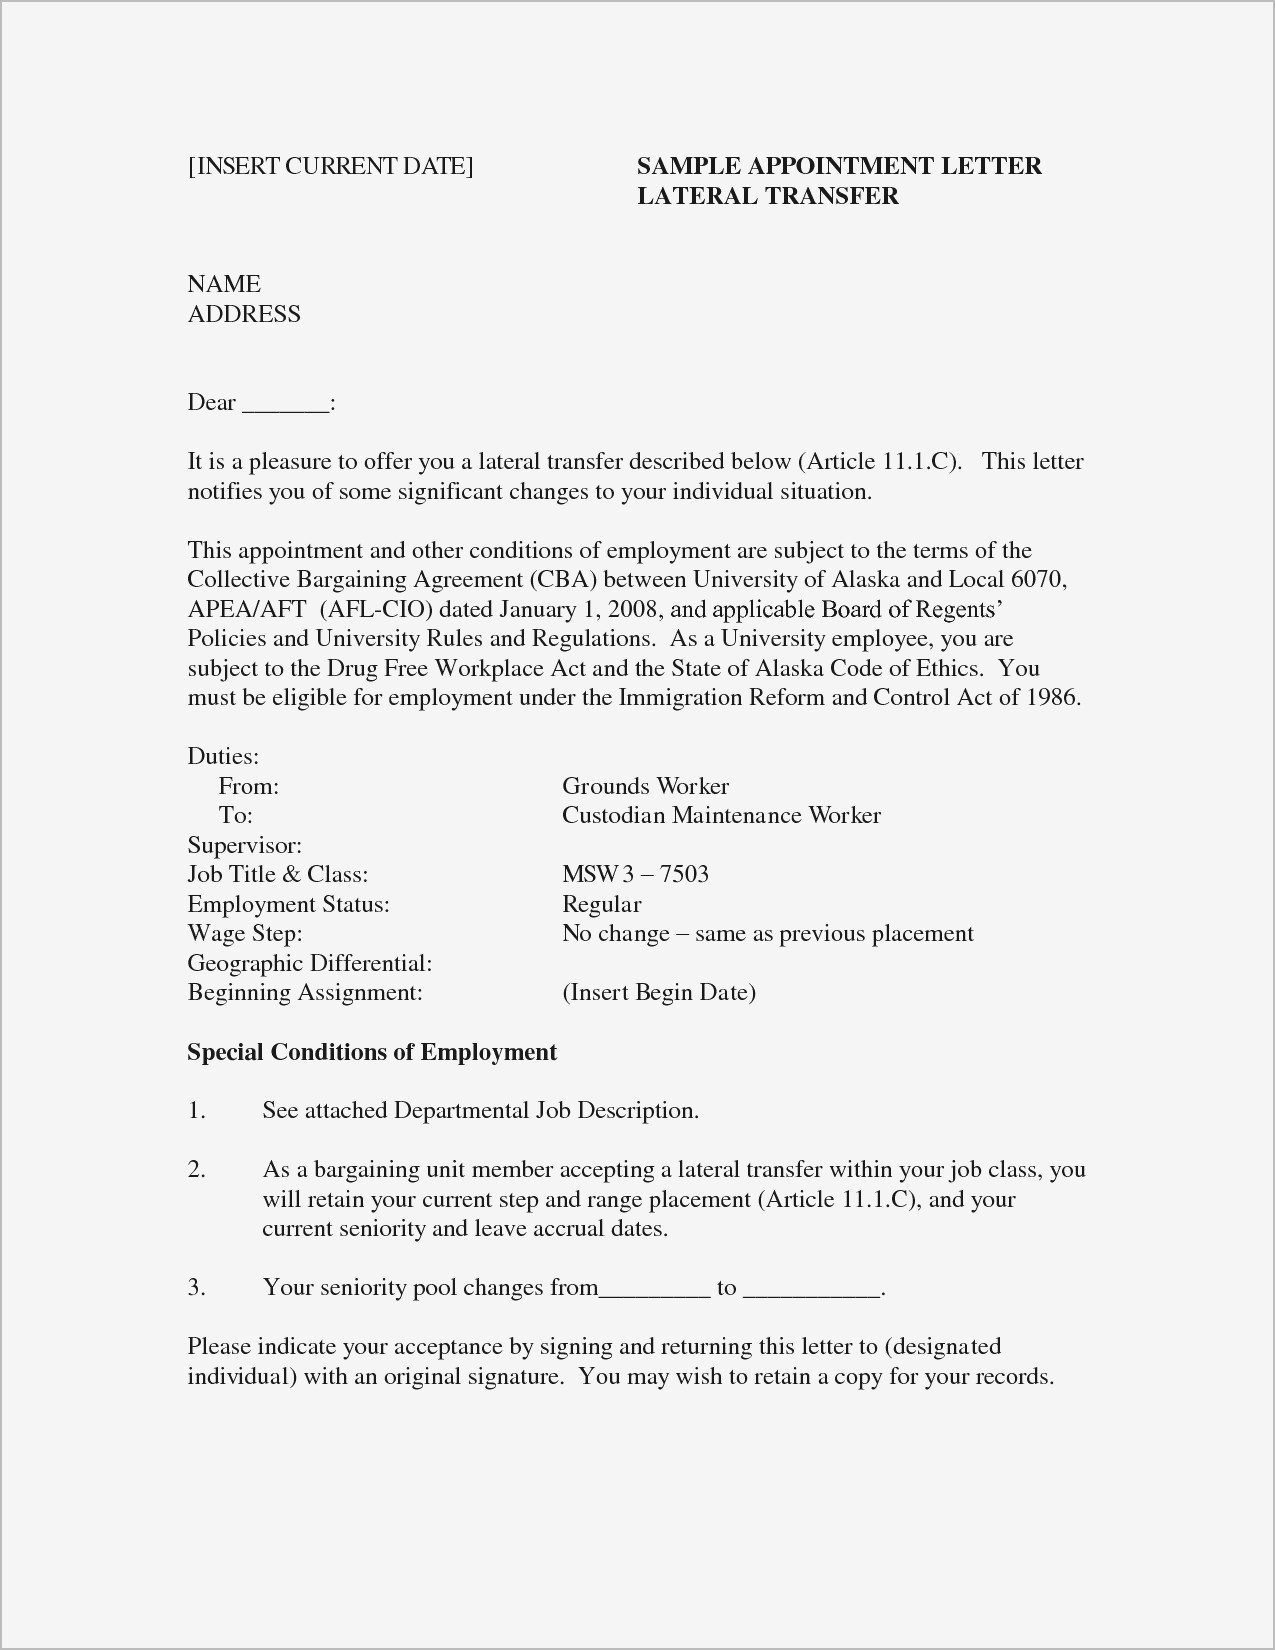 Letter Outline Template - Cover Letter Outline Samples